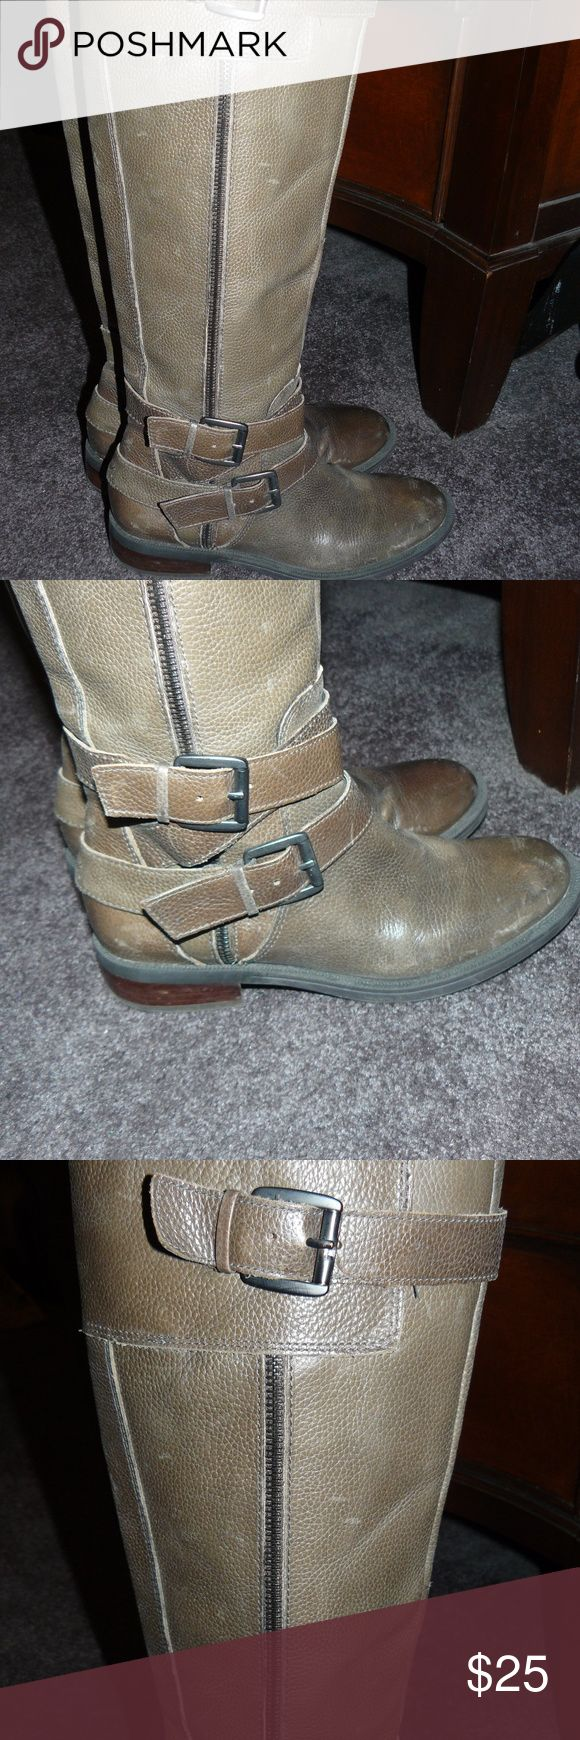 Enzo Angiolini Taupe Knee high boots Size 7.5 Enzo Angiolini Taupe Knew high boots size 7.5. great pre owned condition, double buckles at the bottom of the boot and a buckle detail at the top. zipper on the inner side of the boot and stacked heels. Taupe brownish grey color. Enzo Angiolini Shoes Heeled Boots